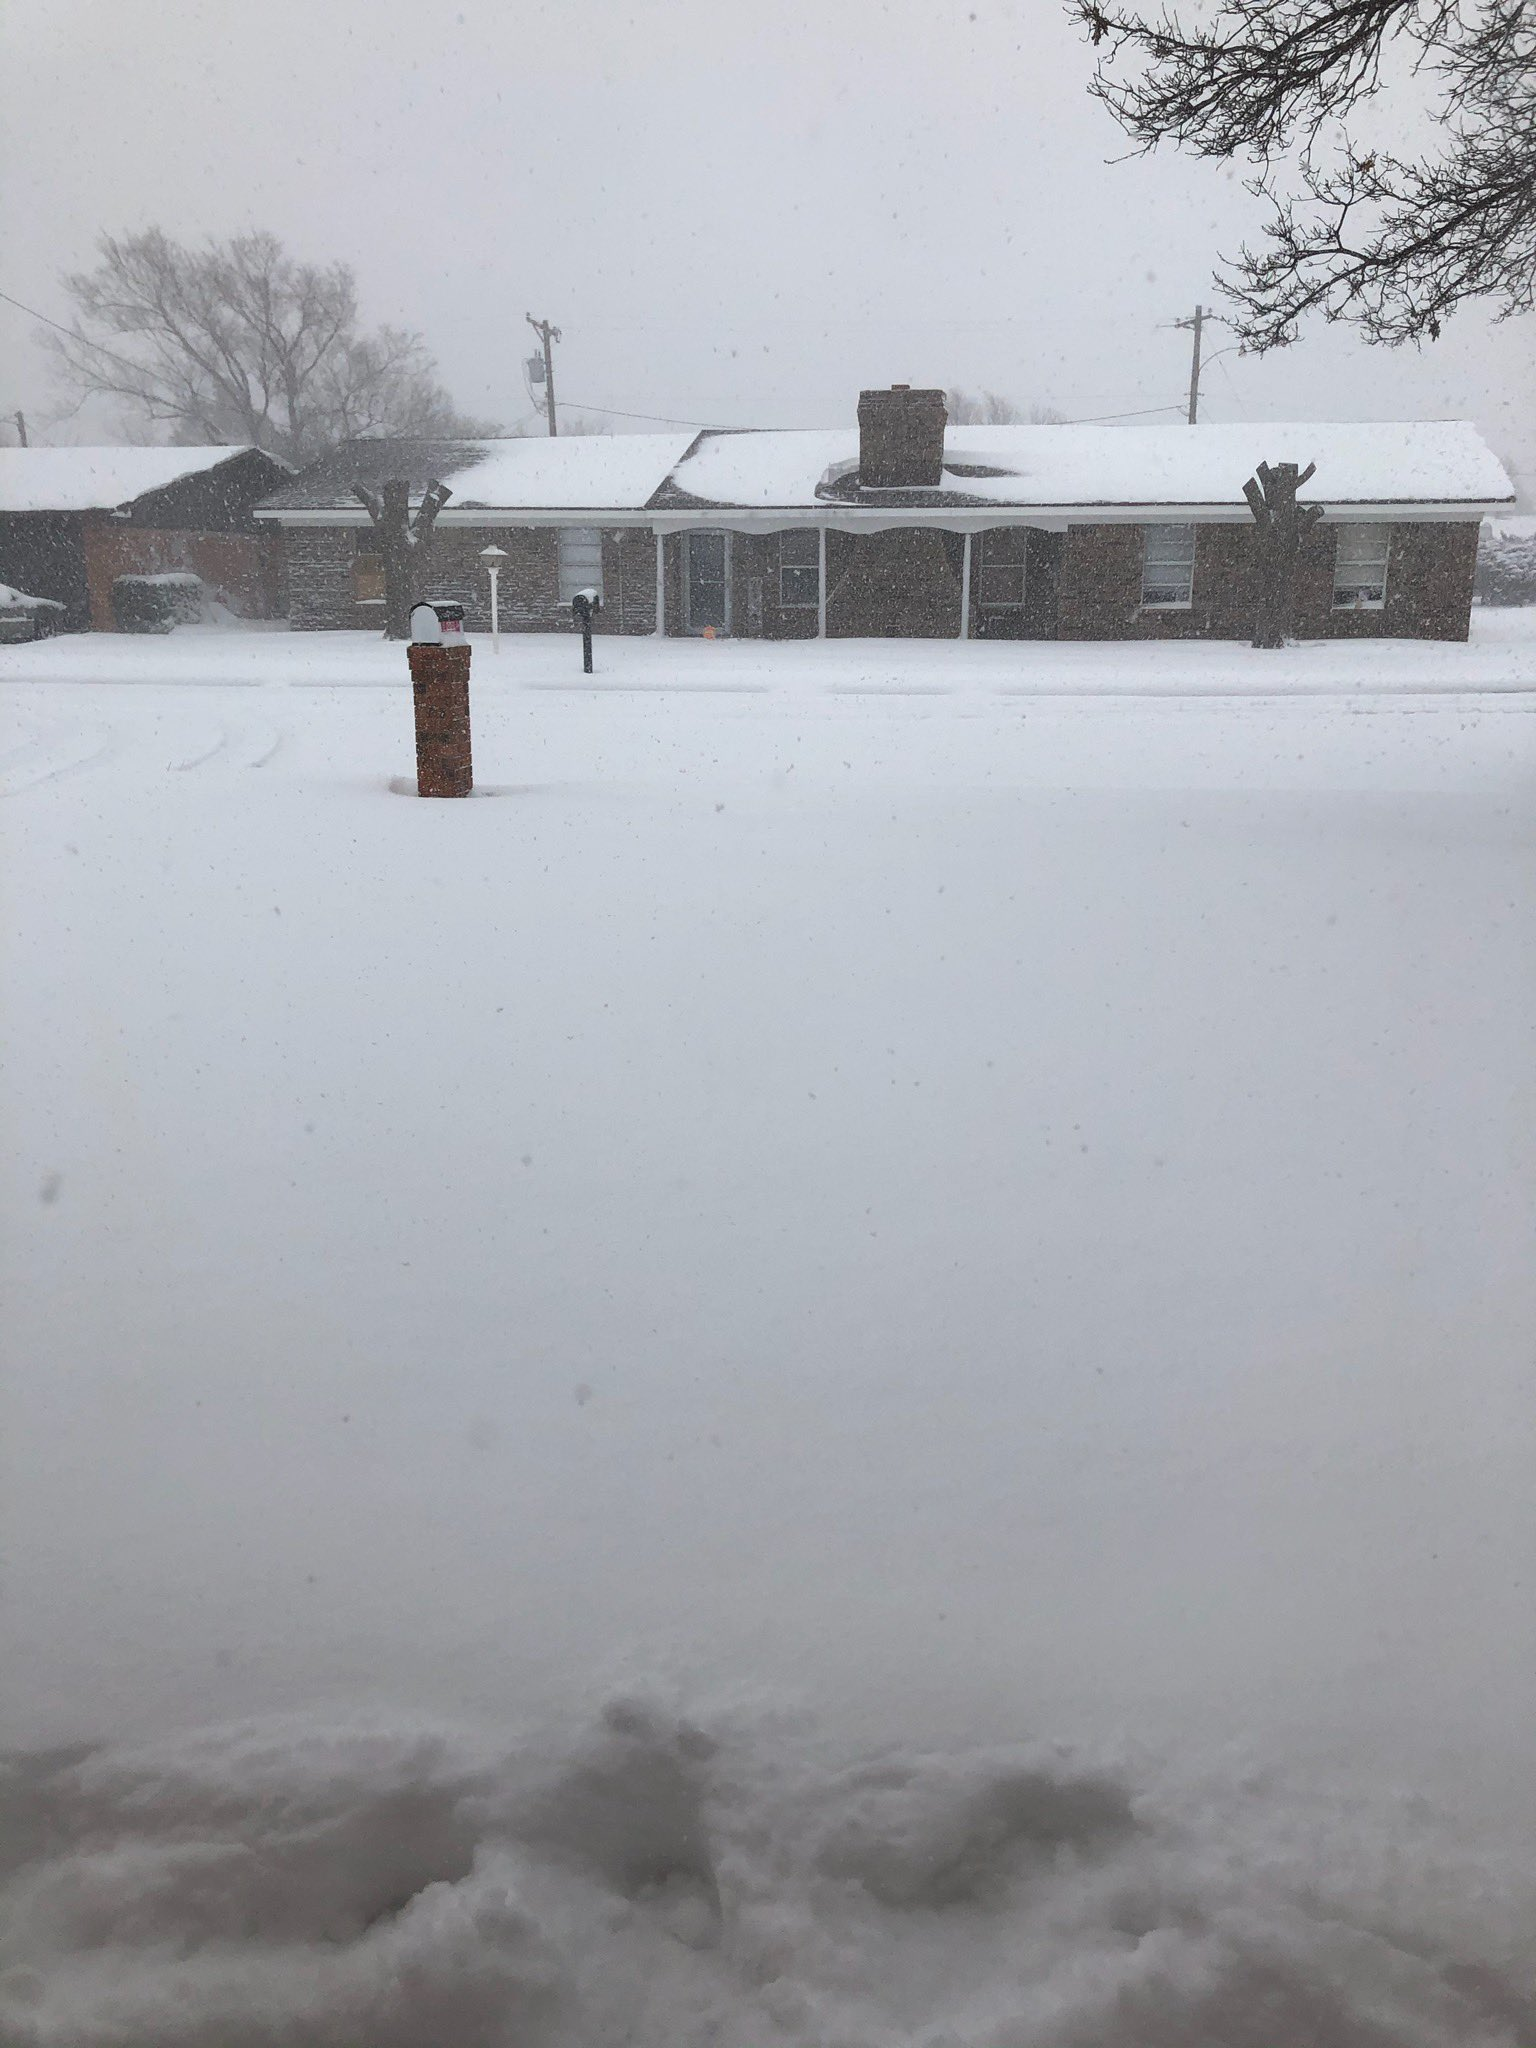 Snow falling in Friona Tuesday afternoon (4 February 2020). The picture is courtesy of Steve Cobb.